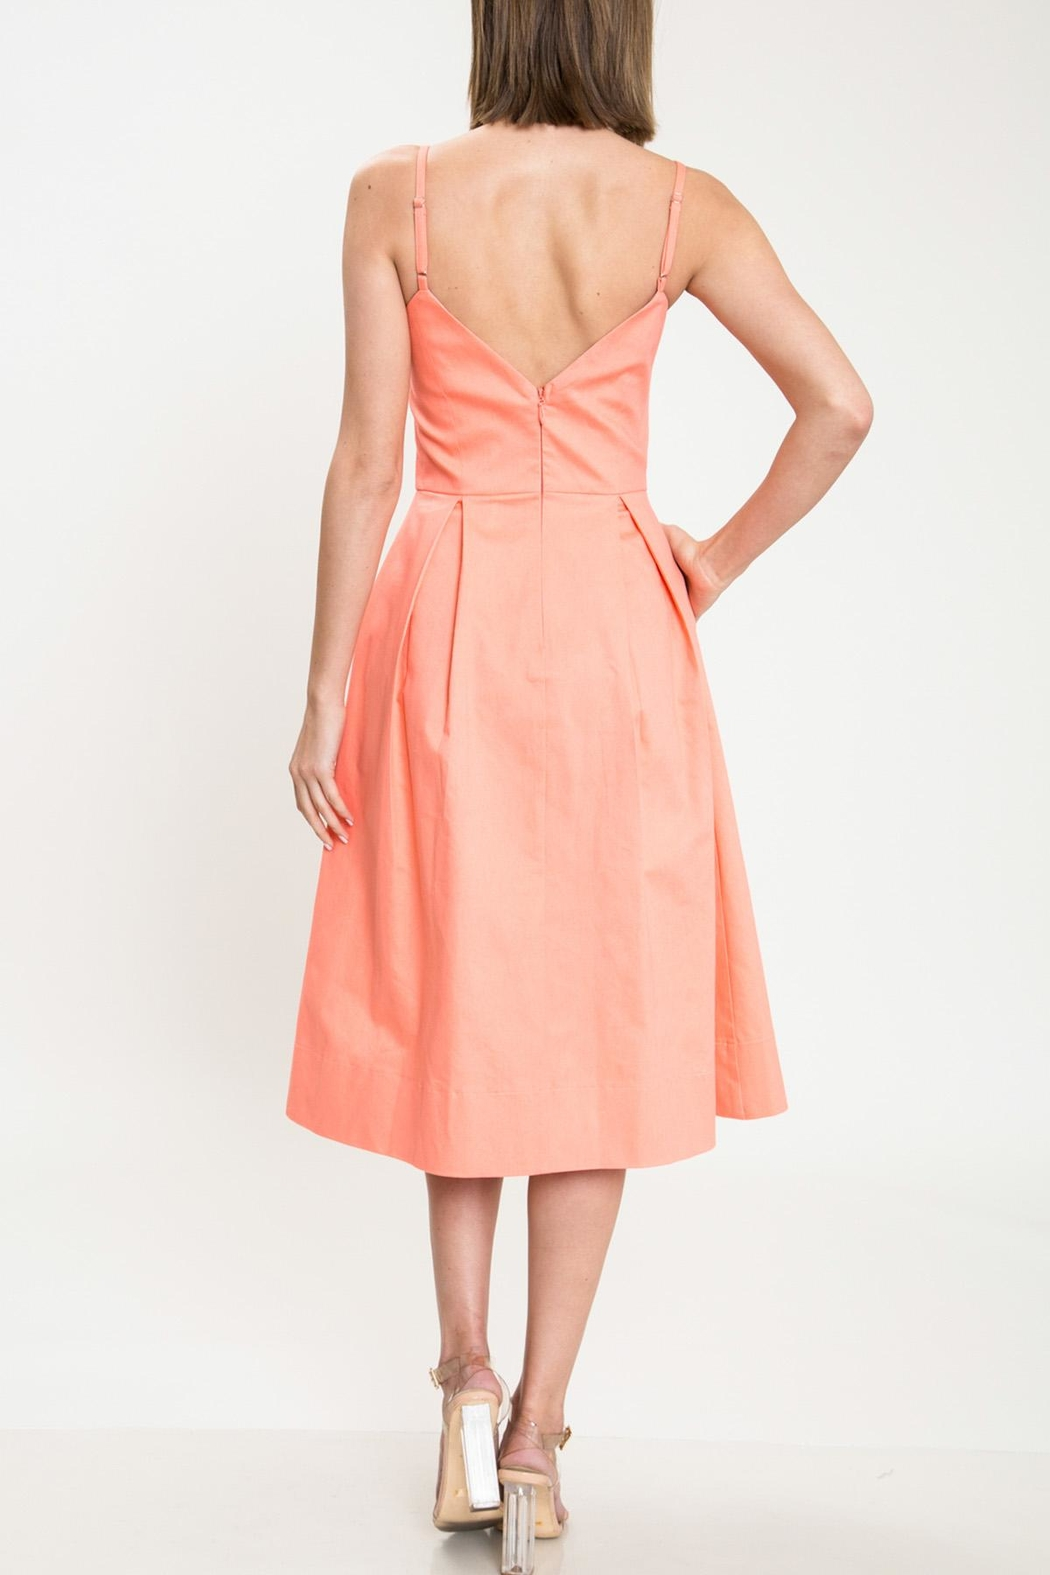 Latiste Coral Bow Dress - Side Cropped Image